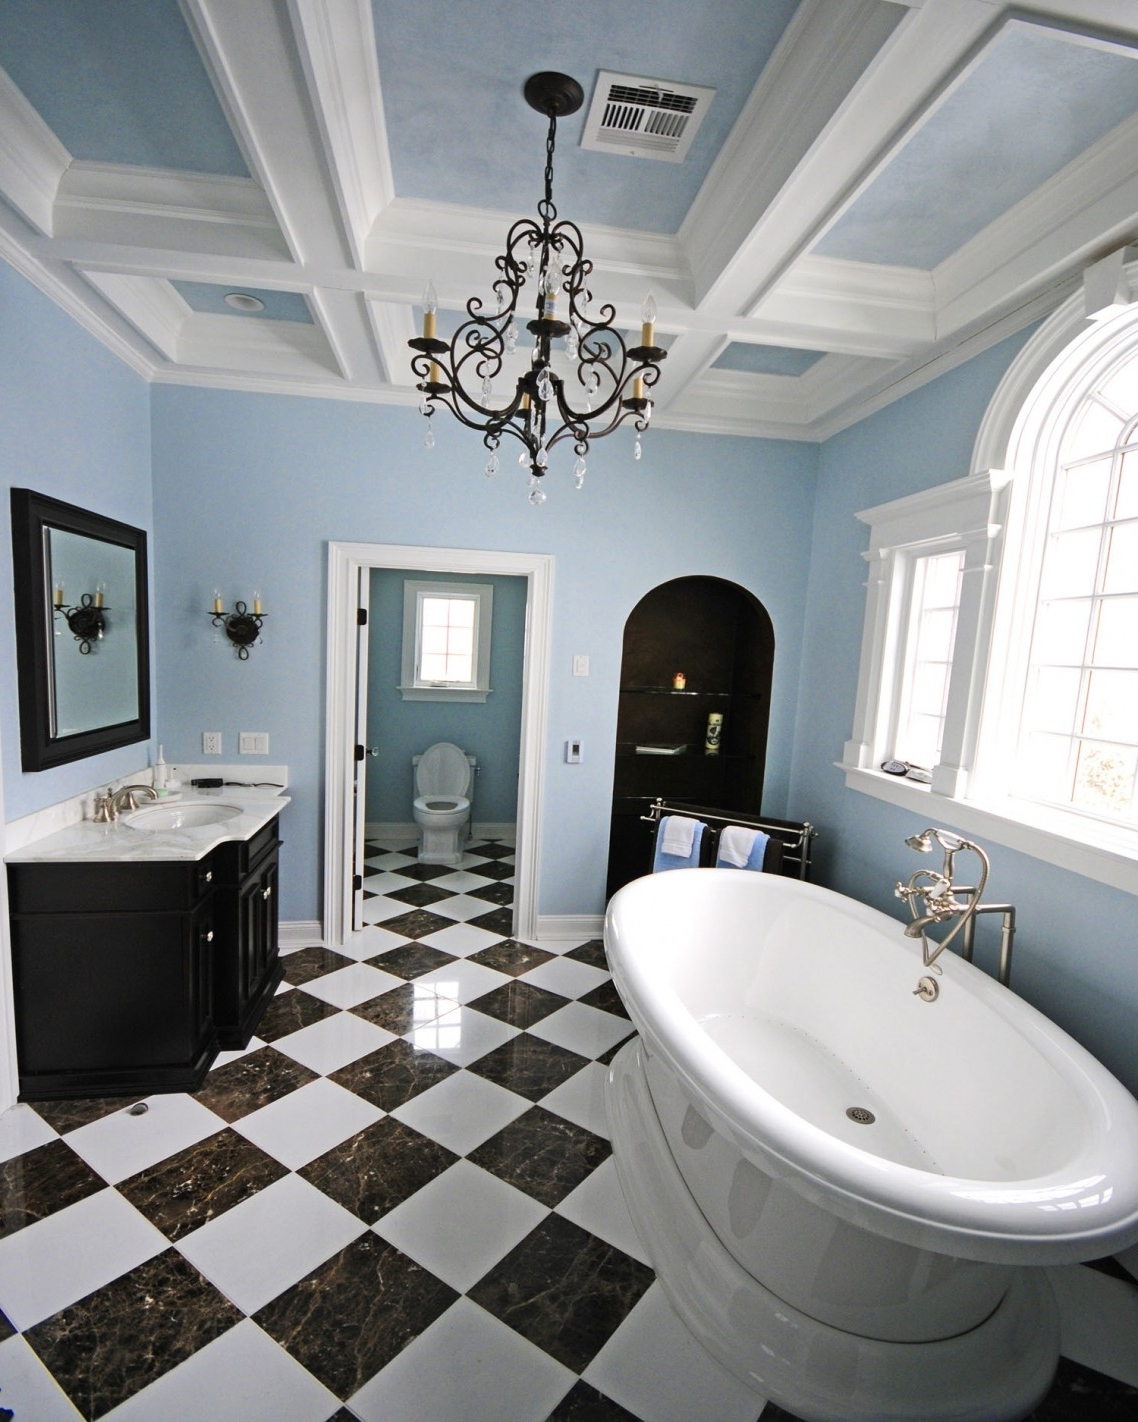 Bathroom Ideas: Bathroom Chandeliers With Black And White Tiles Regarding Most Recent Bathroom Chandeliers (View 6 of 20)